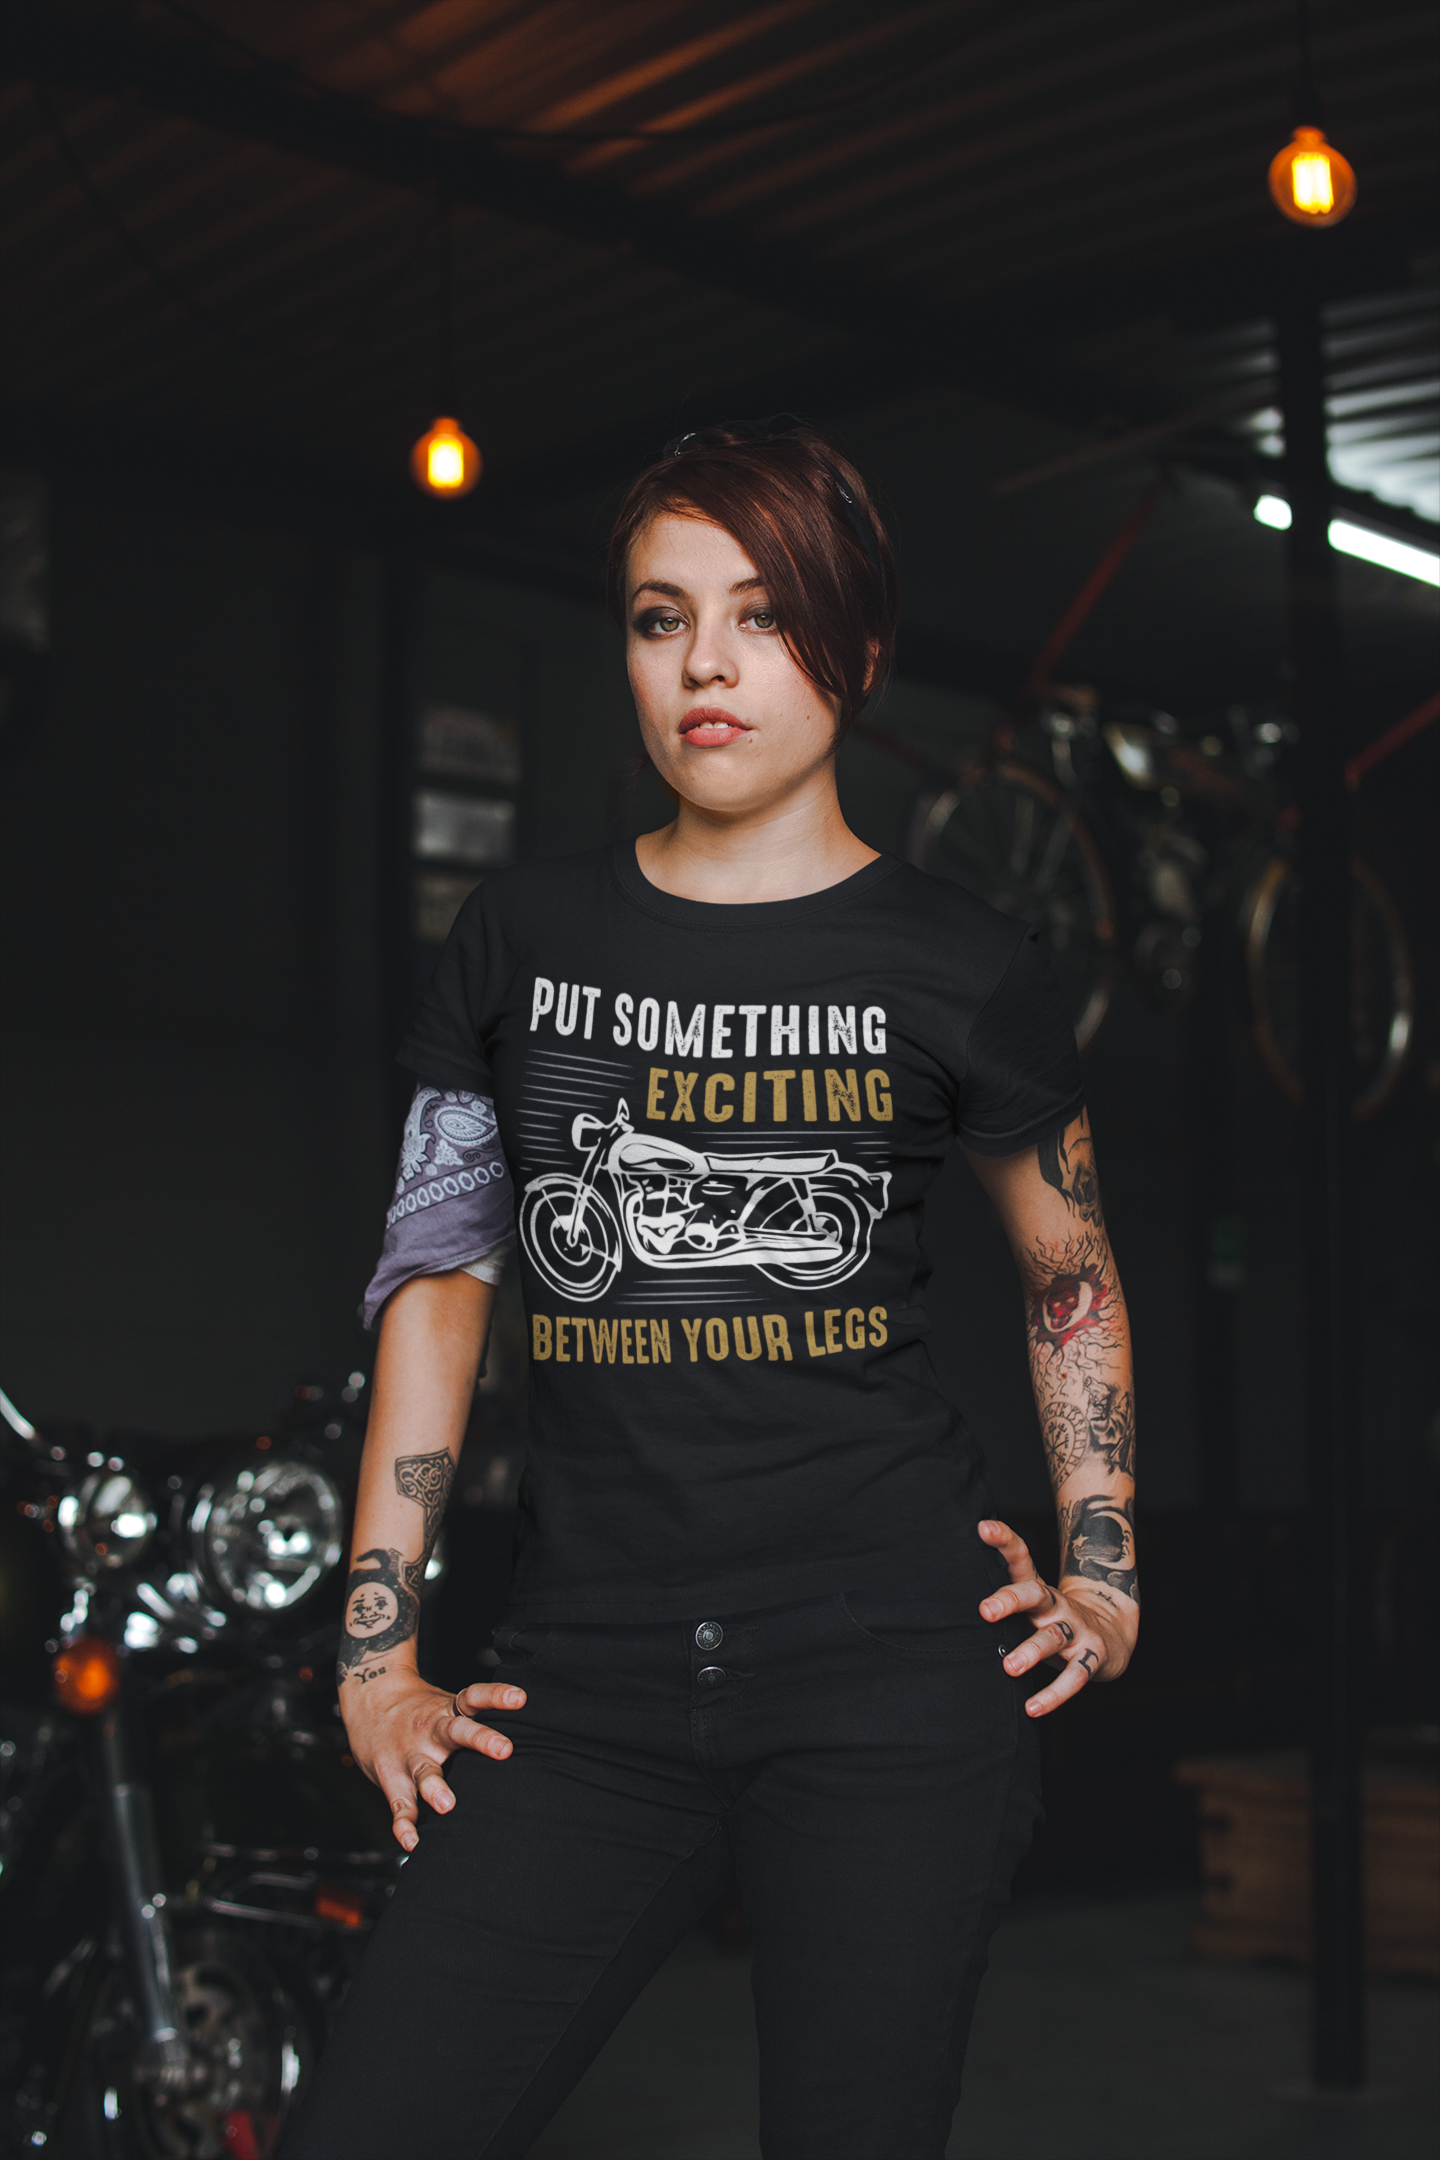 Put Something Exciting Between Your Legs T Shirts In 2020 Motorcycle Tshirts Motocross T Shirts Biker T Shirts